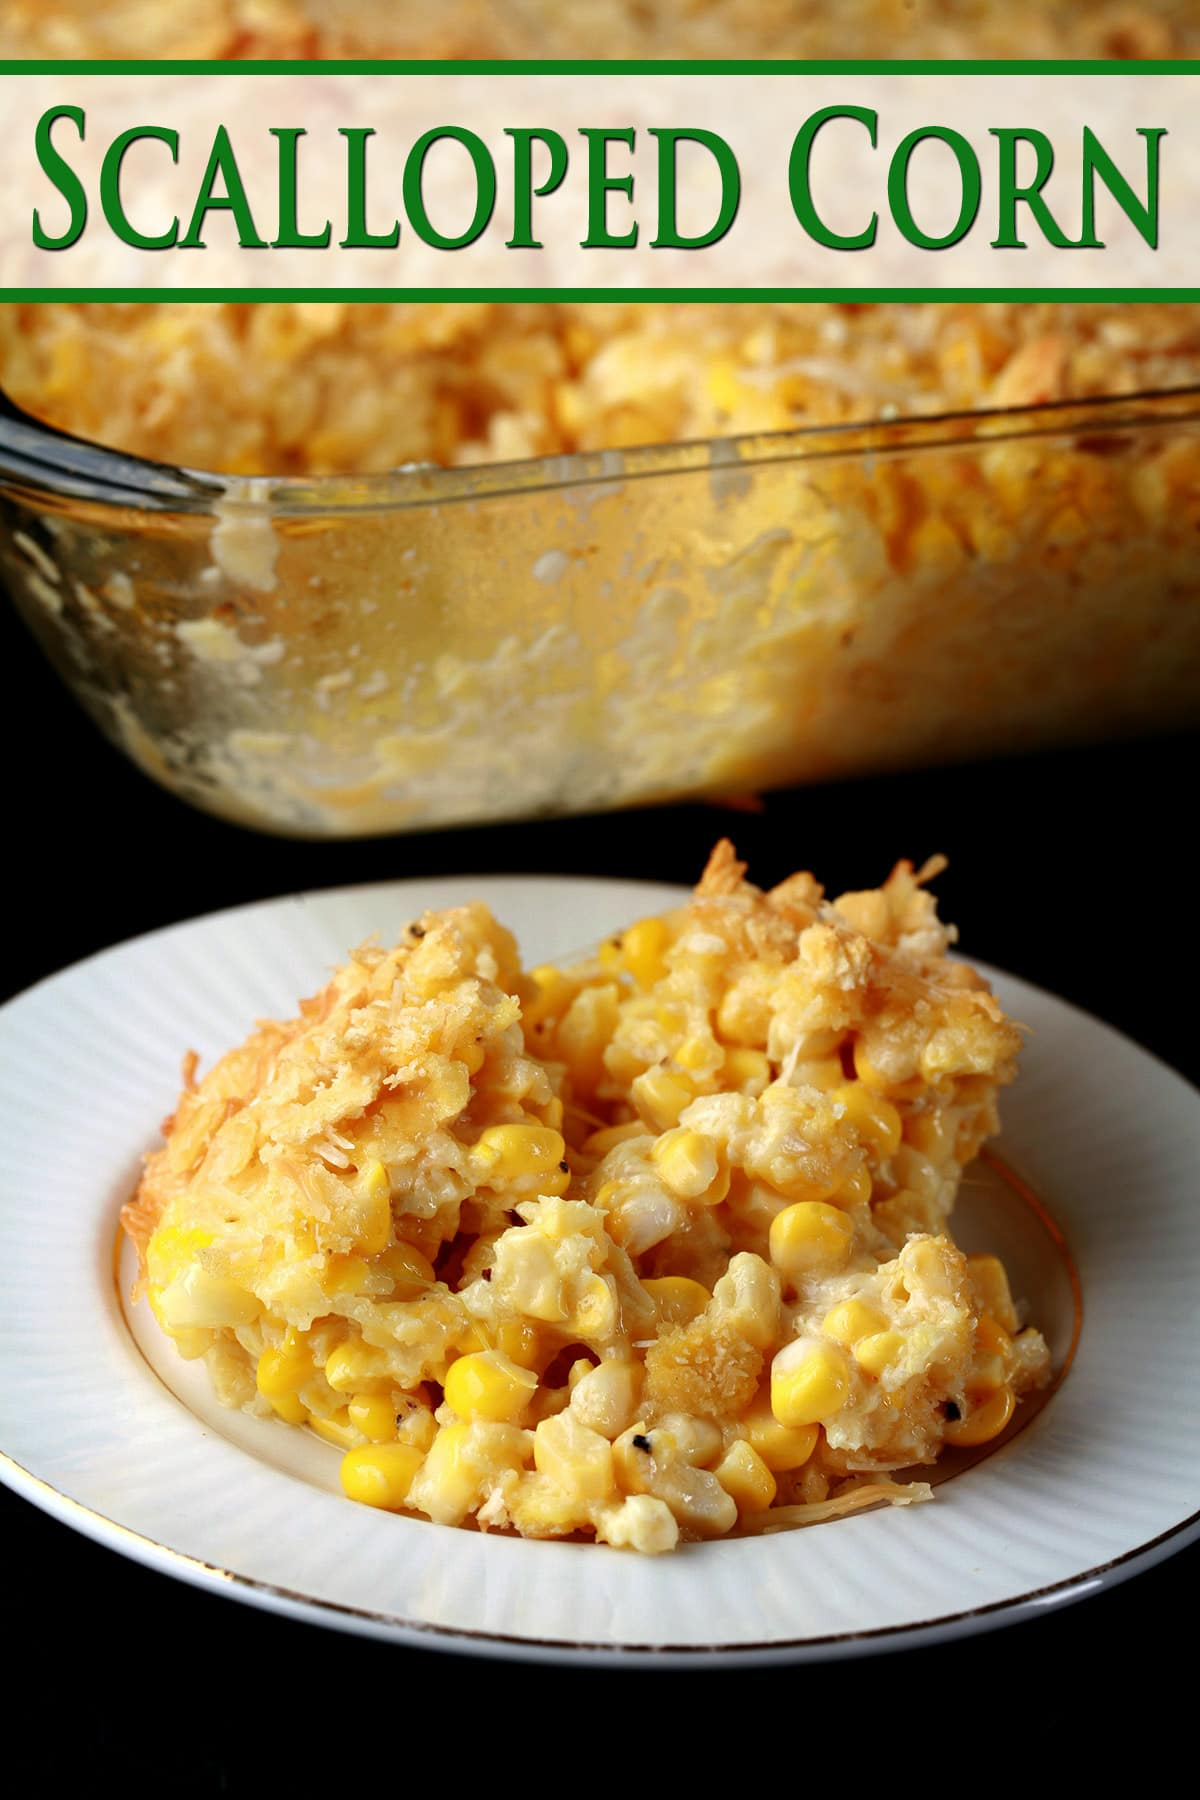 A serving of scalloped corn - fresh sweet corn, cheese, crackers, and more - on a small white plate.  The pan of casserole it was served from sits behind the plate.